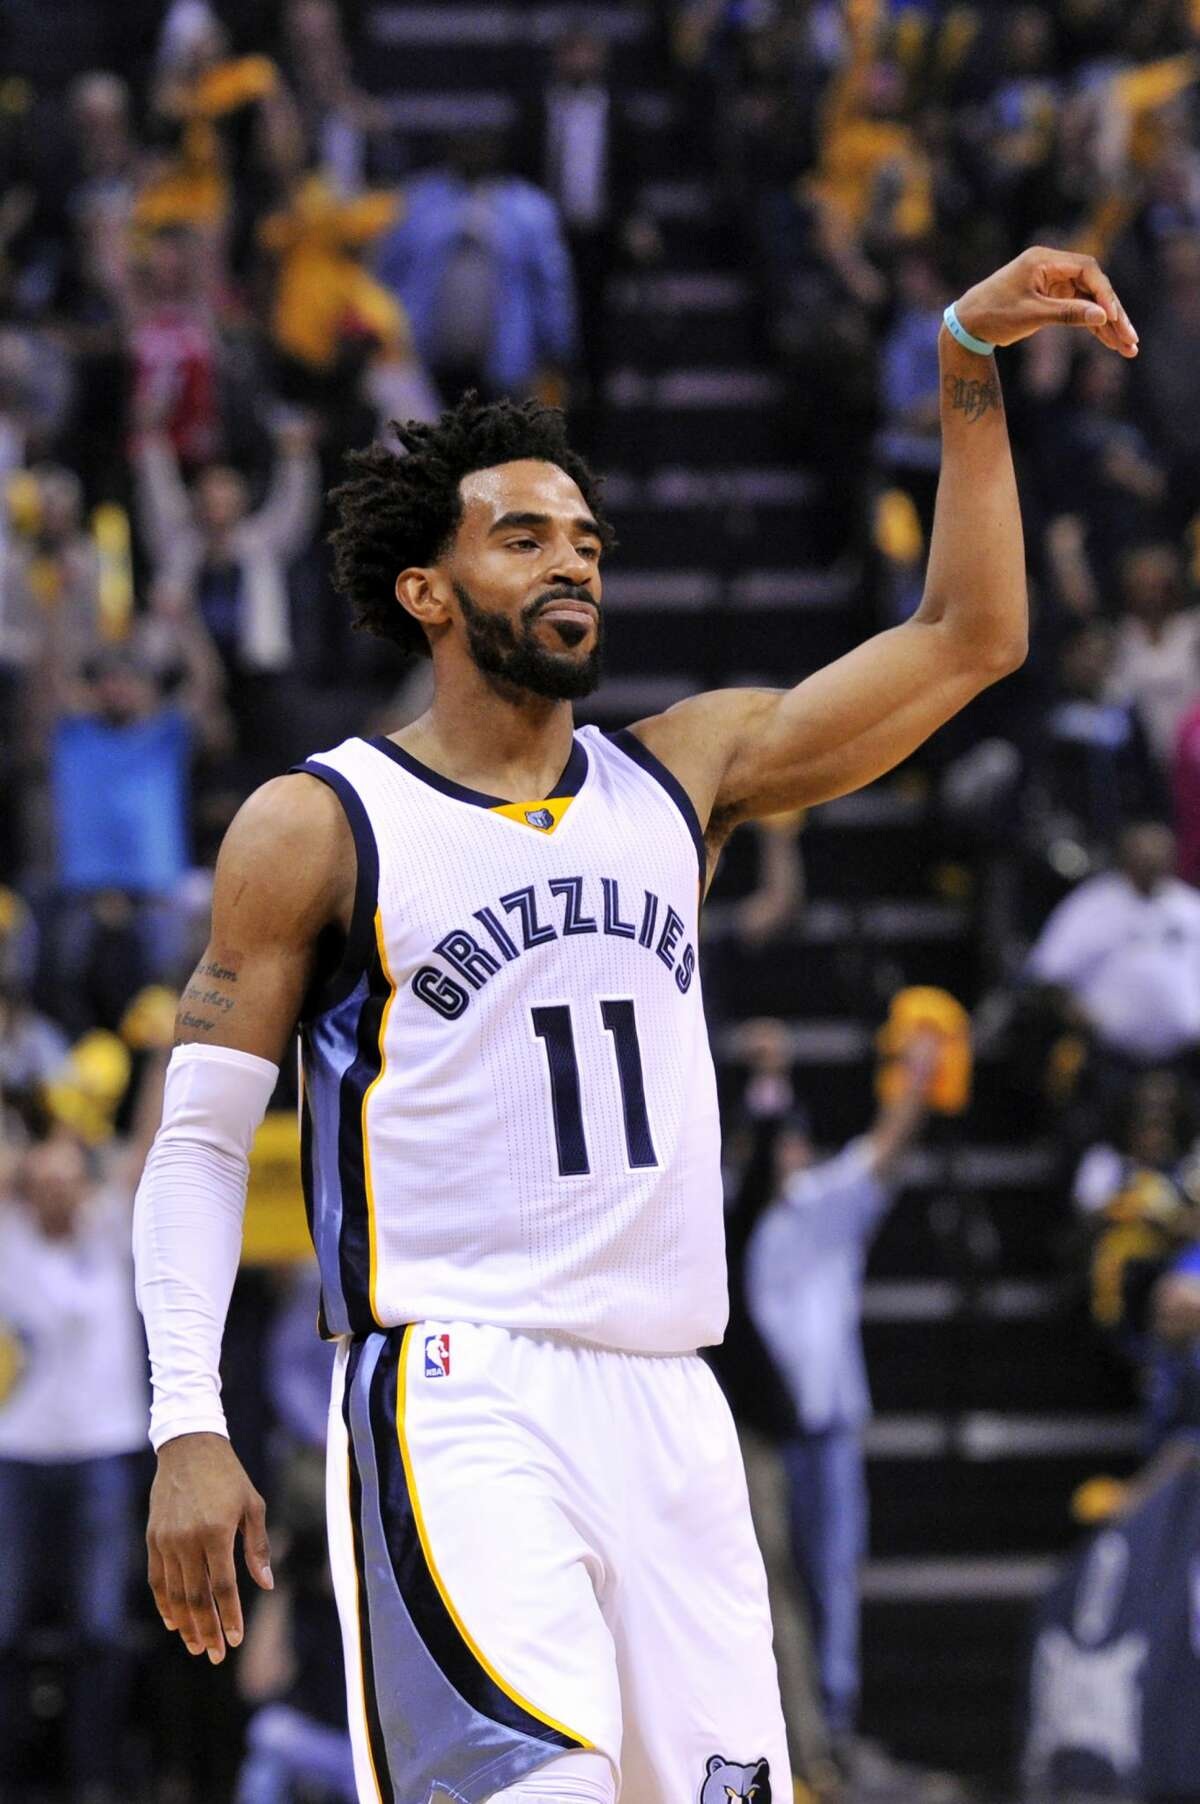 Memphis Grizzlies guard Mike Conley (11) reacts after scoring a three-point basket during the first half of Game 4 in an NBA basketball first-round playoff series against the San Antonio Spurs, Saturday, April 22, 2017, in Memphis, Tenn. (AP Photo/Brandon Dill)